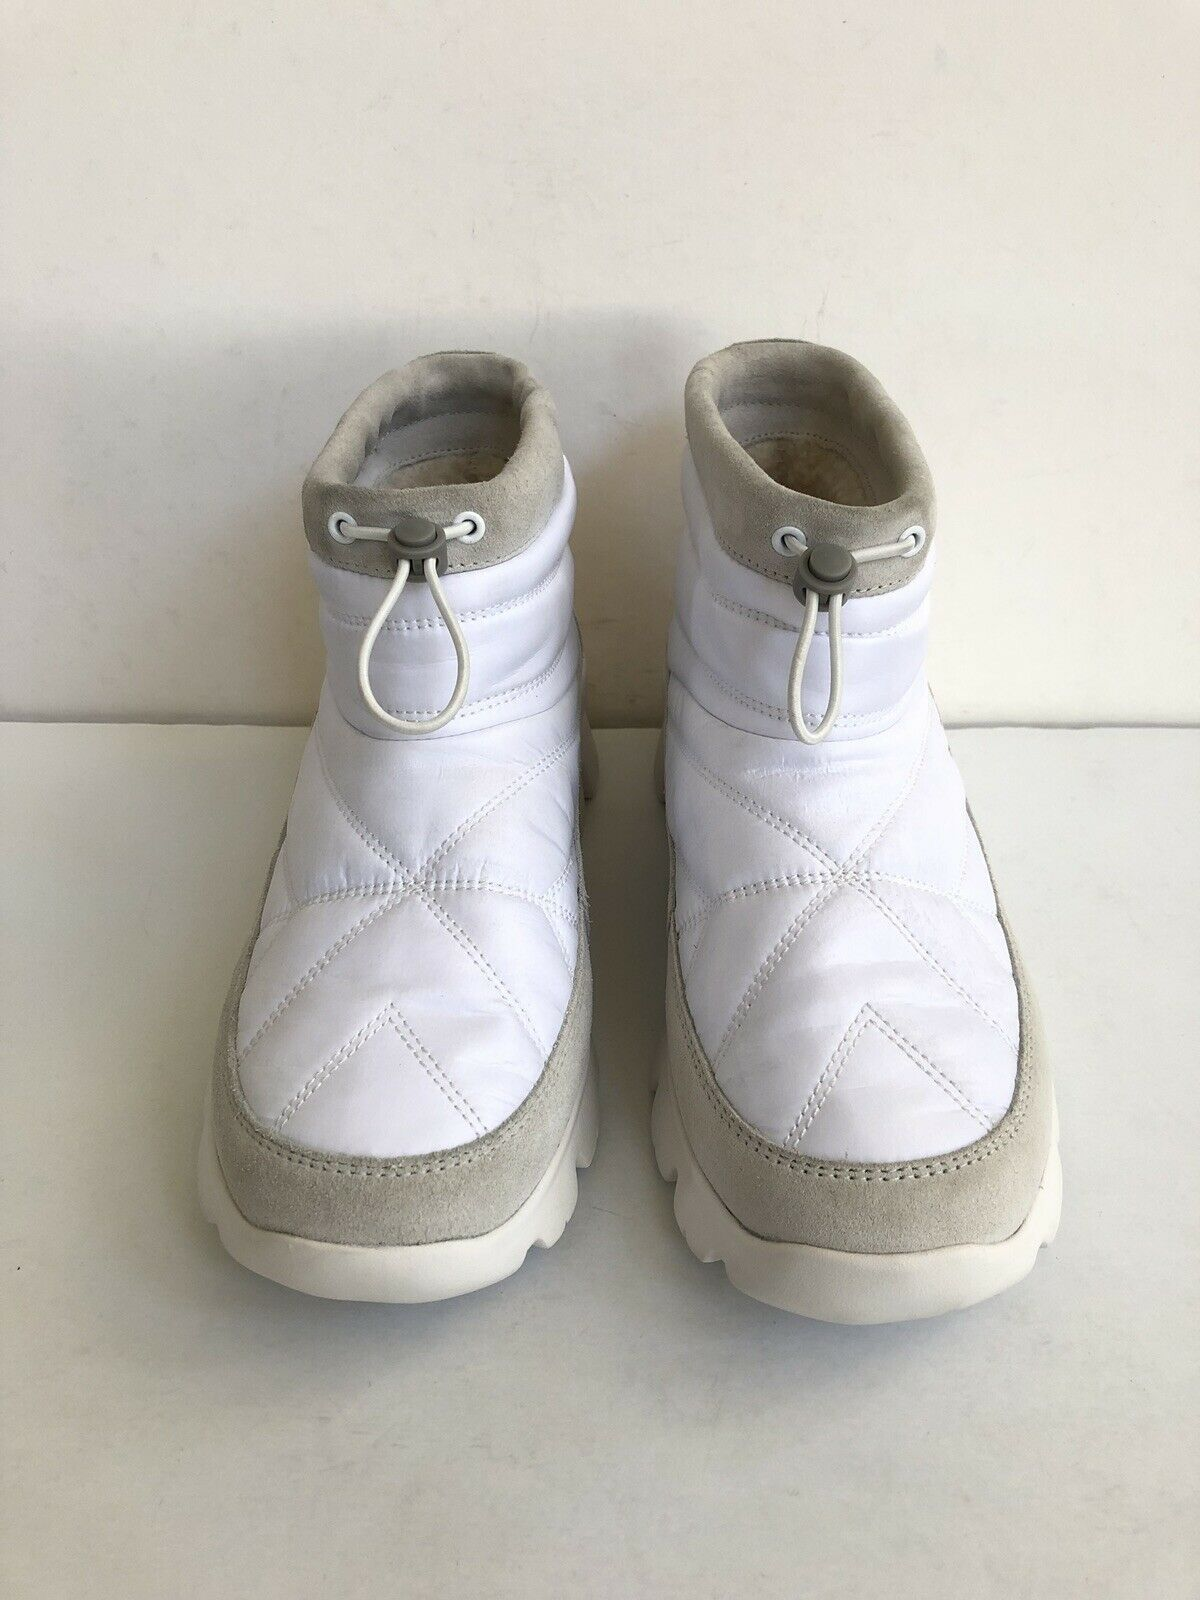 UGG CENTARA WHITE WATERPROOF ANKLE QUILTED SNEAKER SHOE US 6.5 / EU 37.5 /UK 4.5 image 3